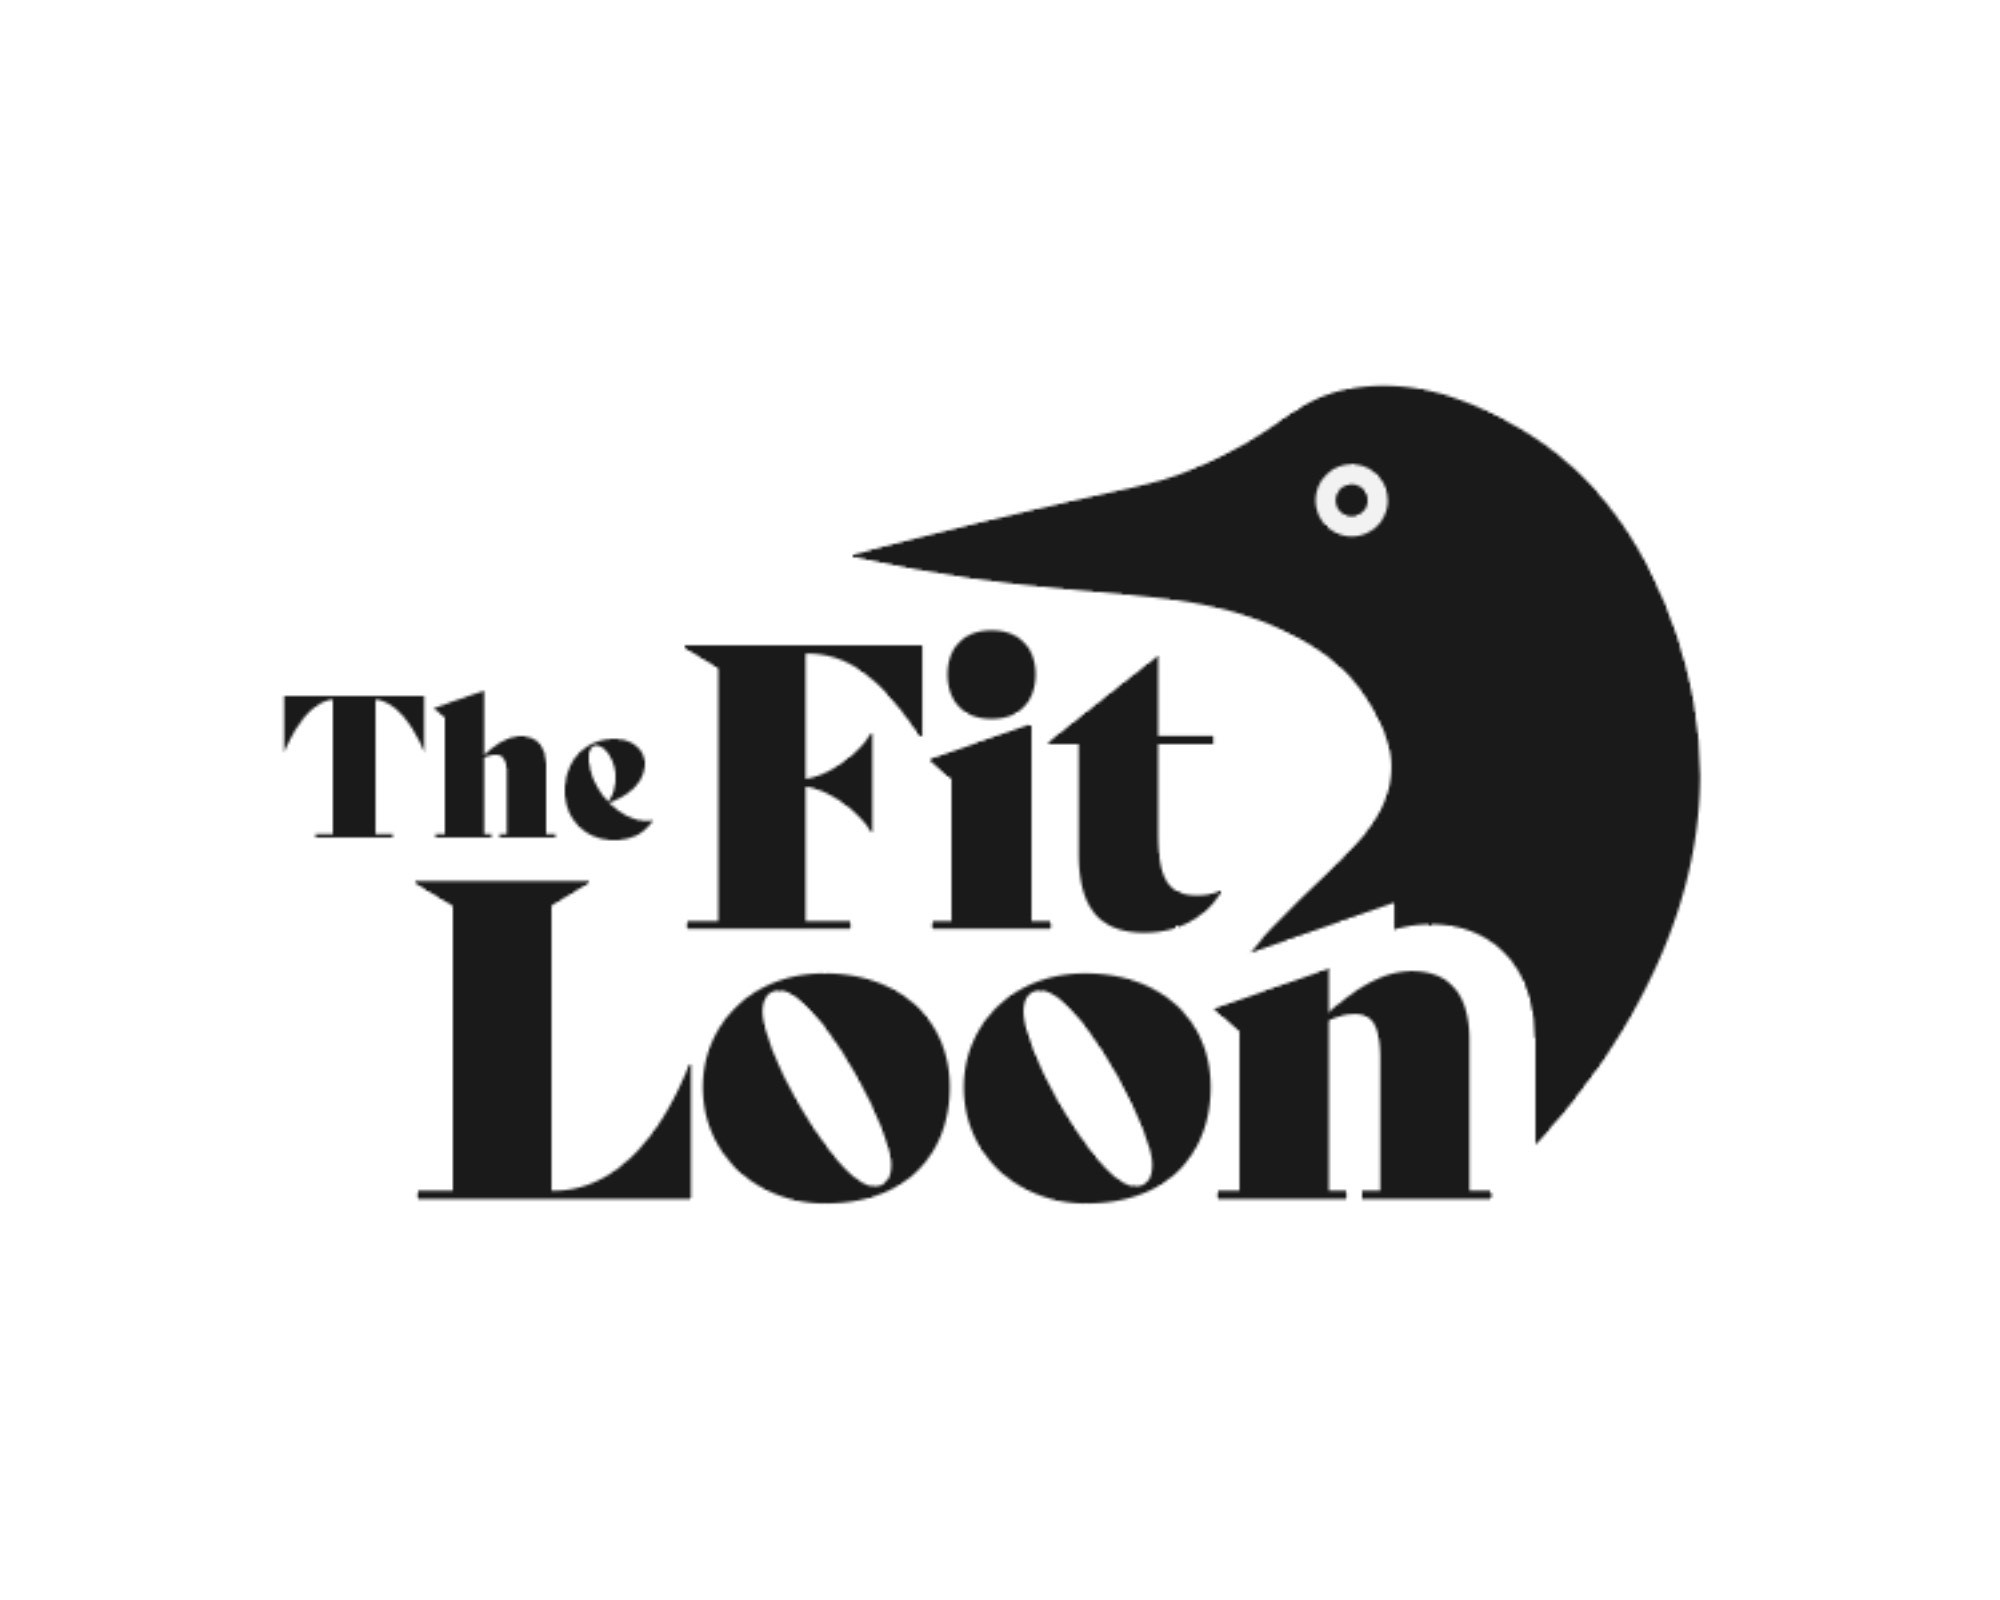 The Fit Loon